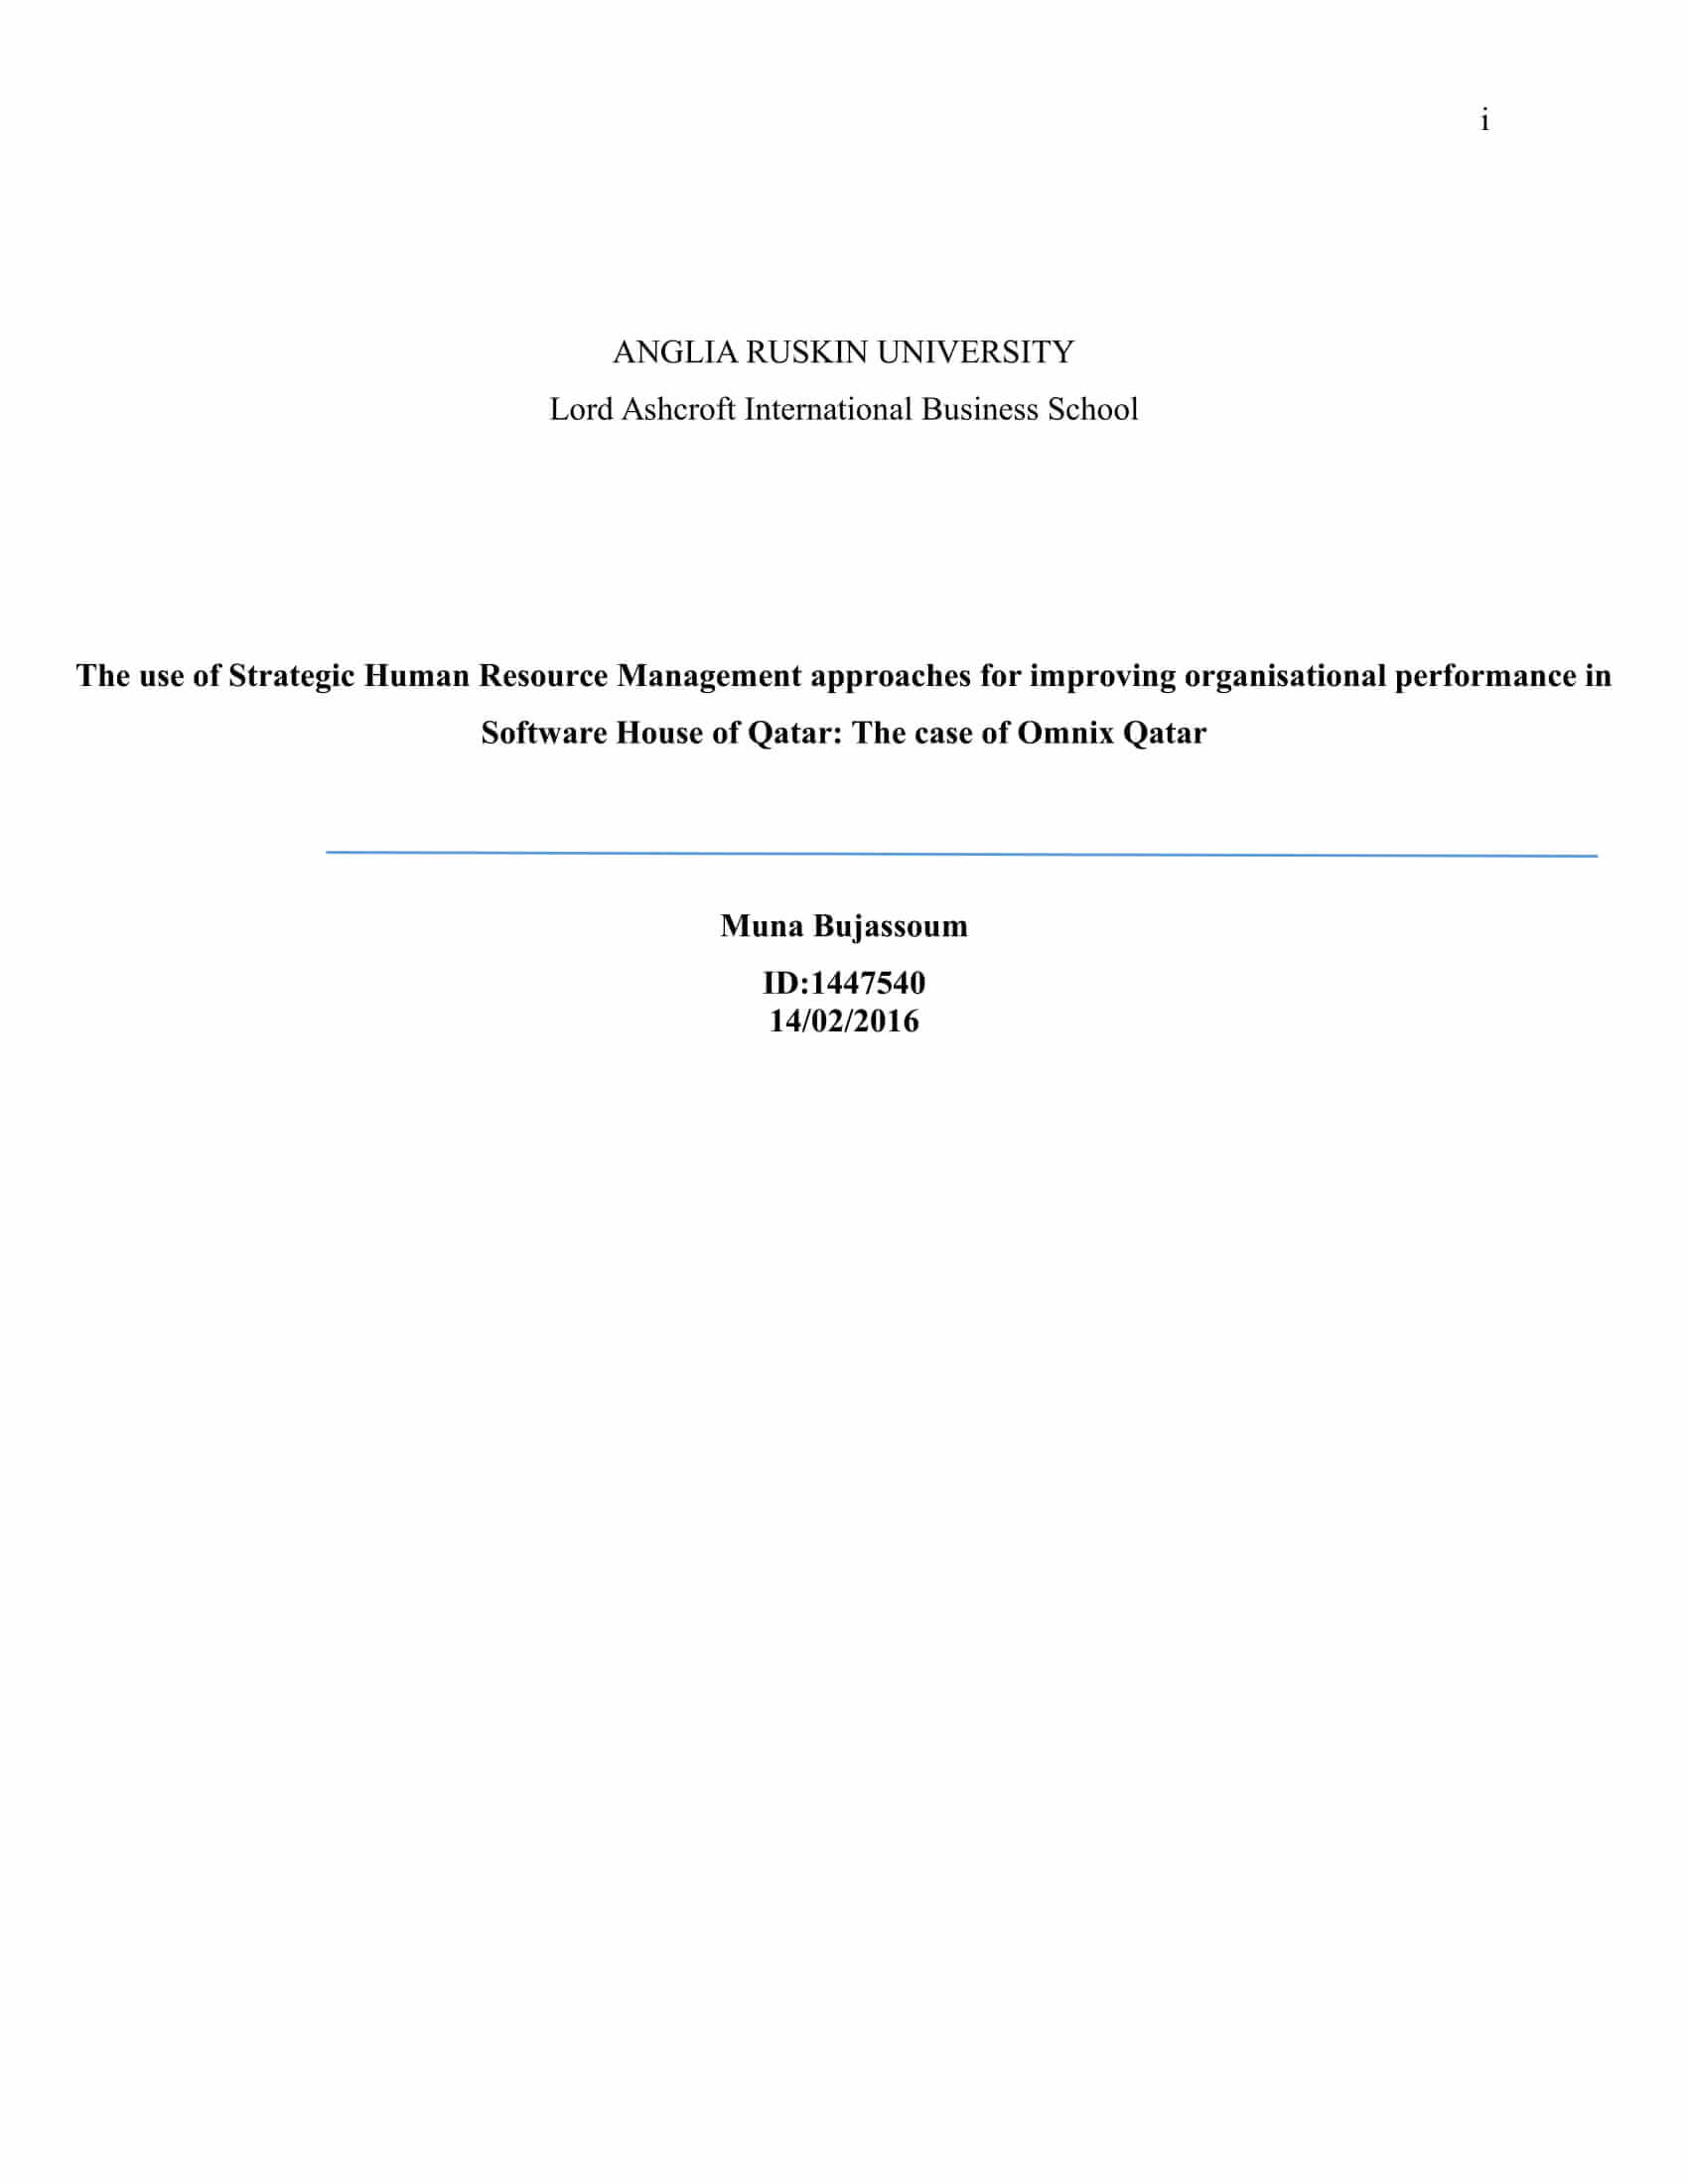 esl thesis statement ghostwriters websites for mba